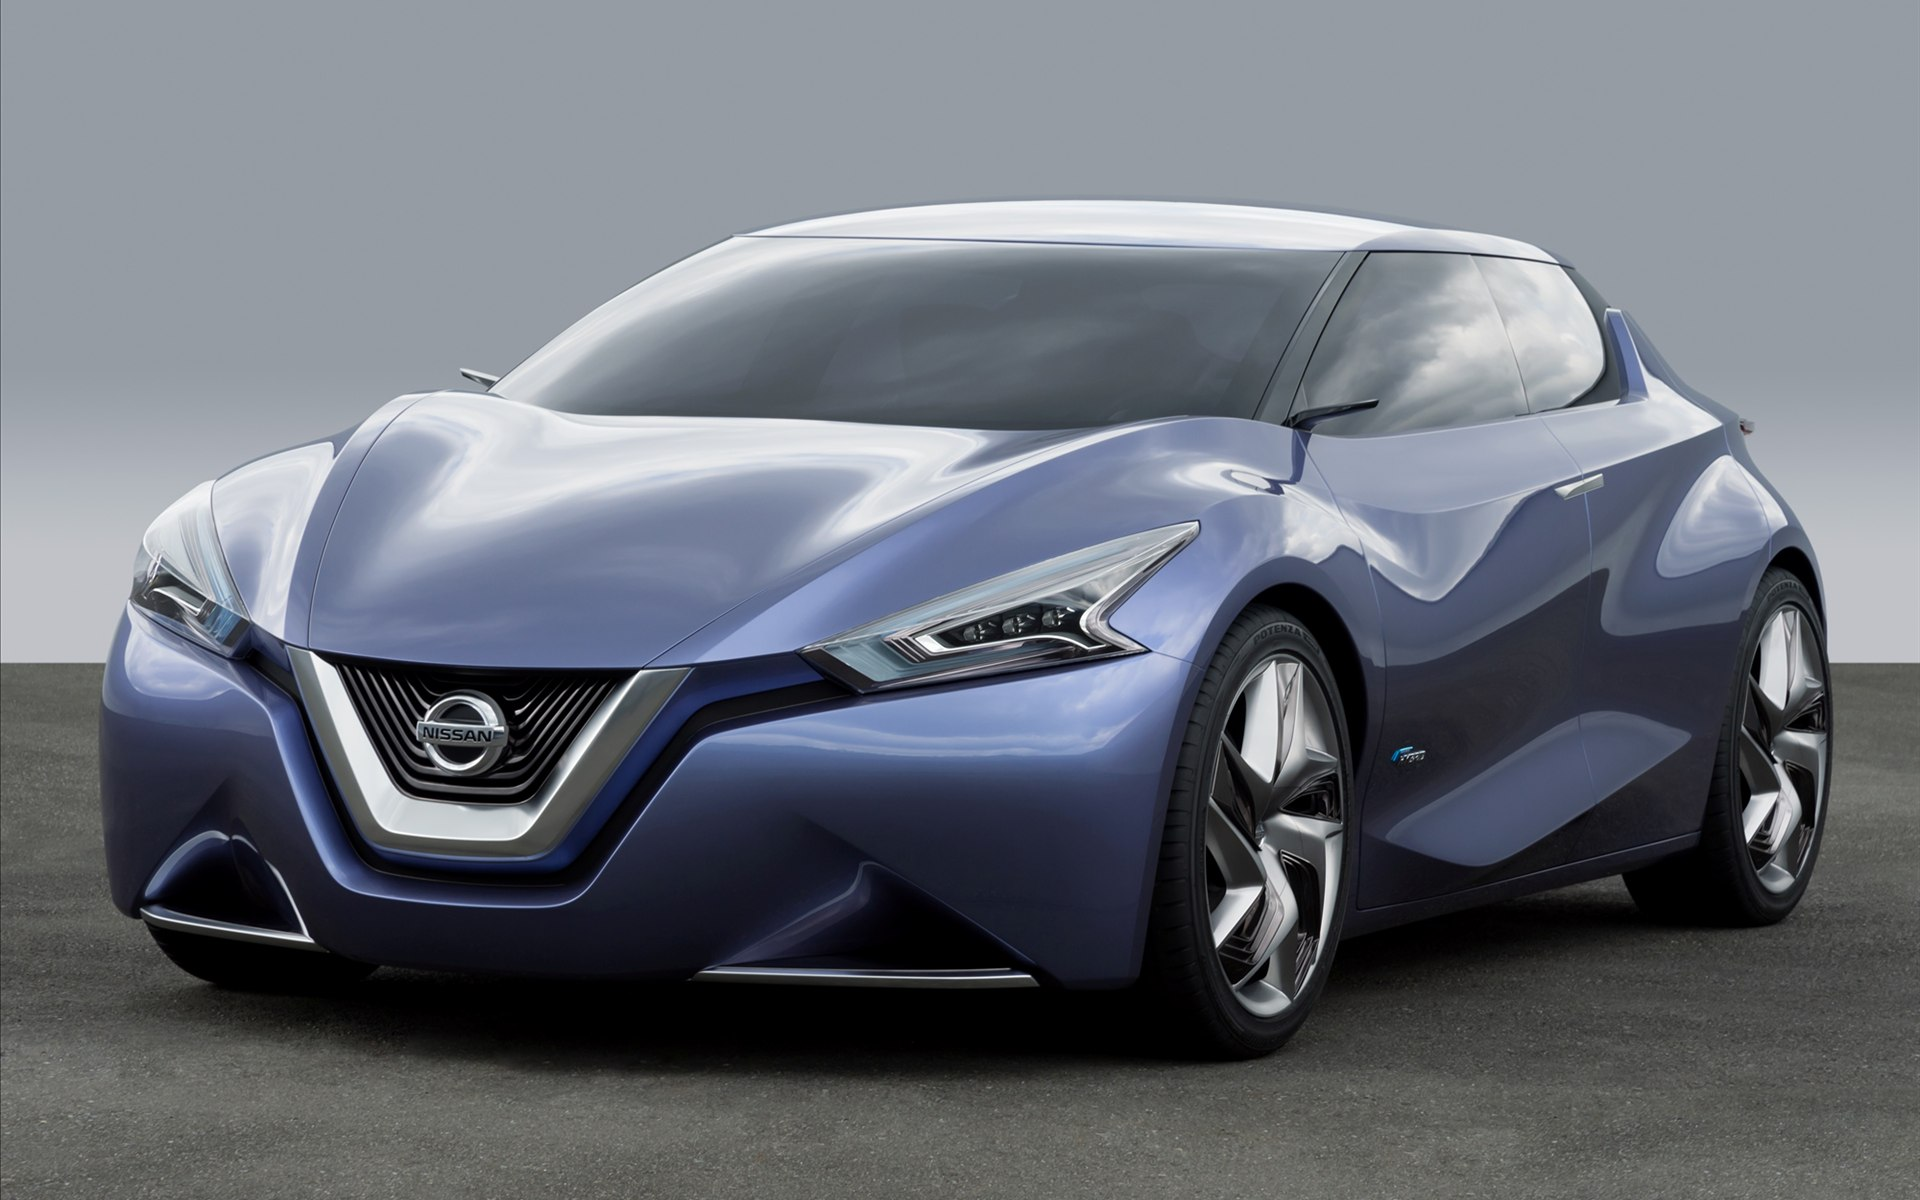 2017 Nissan Friend ME Concept photo - 4